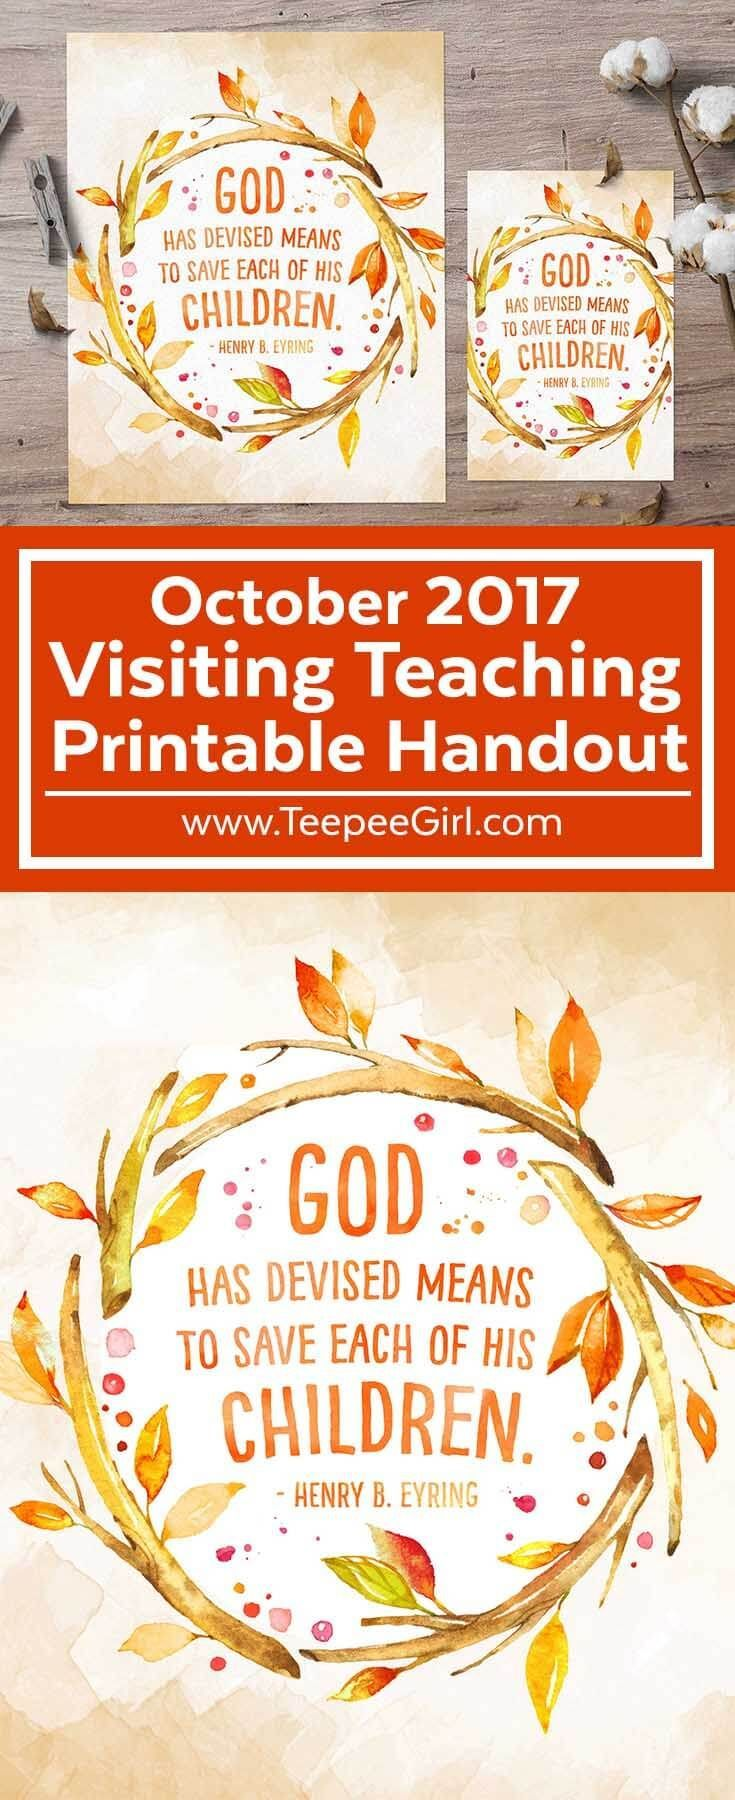 Use this October 2017 Visiting Teaching printable handout for lessons, handouts, decor, gifts, and of course, visiting teaching! Comes in English & Spanish. Download it today at www.TeepeeGirl.com